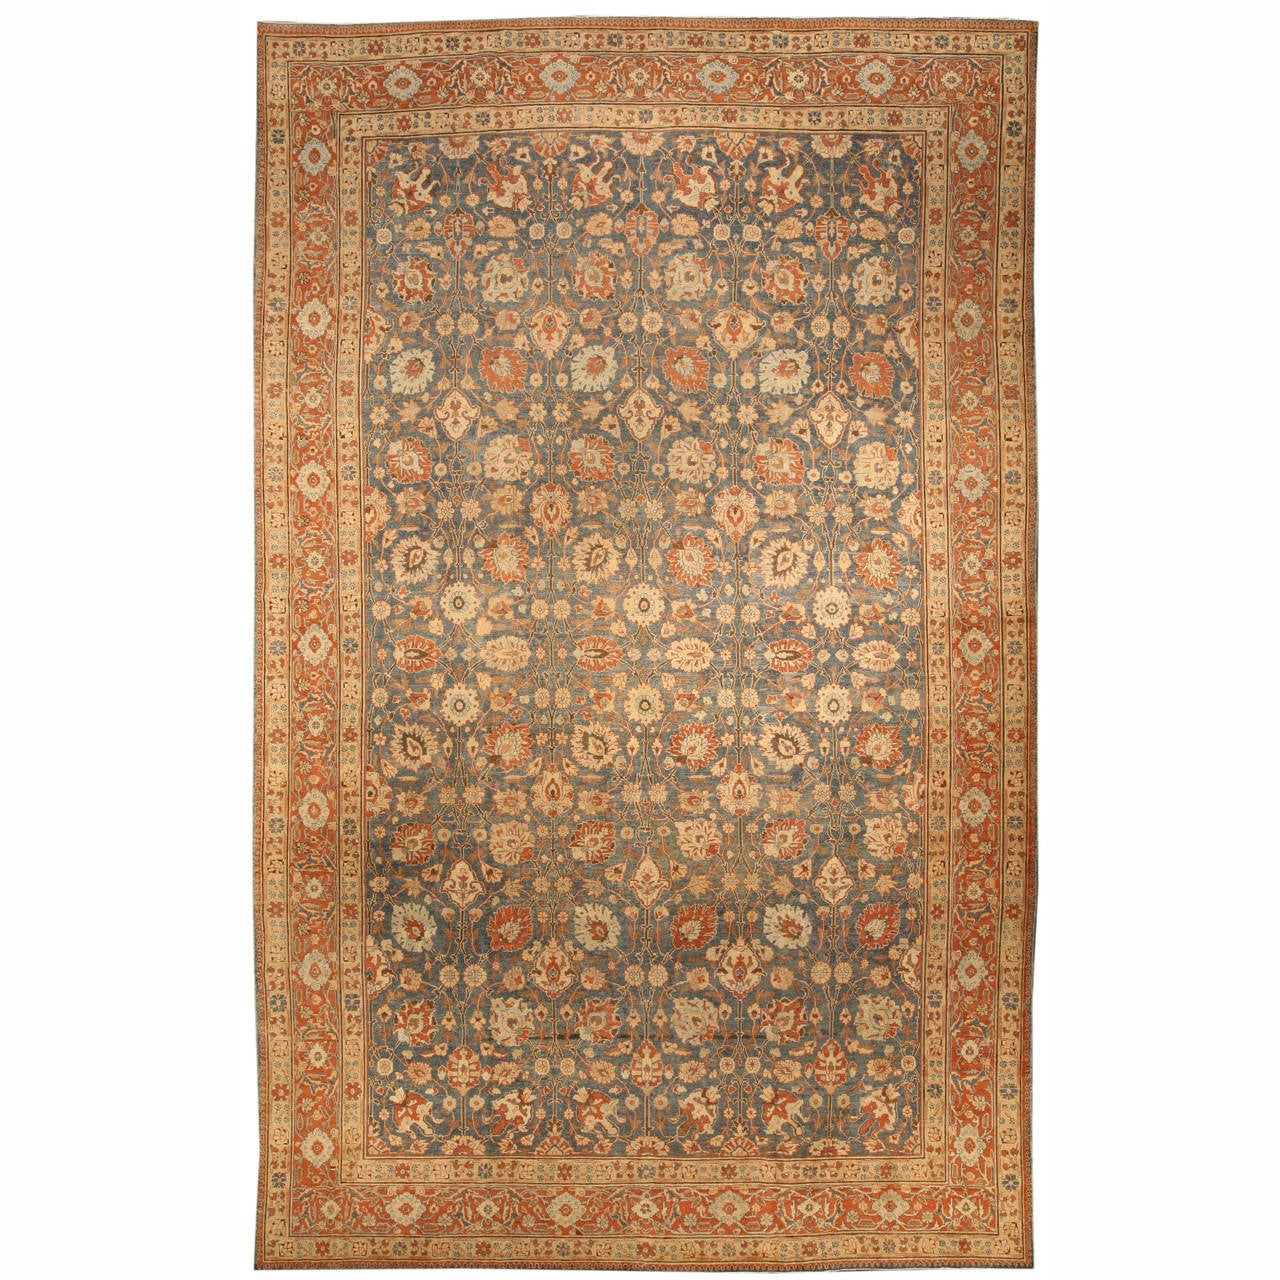 Antique persian tabriz rug for sale at 1stdibs - Deluxe persian living room designs with artistic rug collection ...